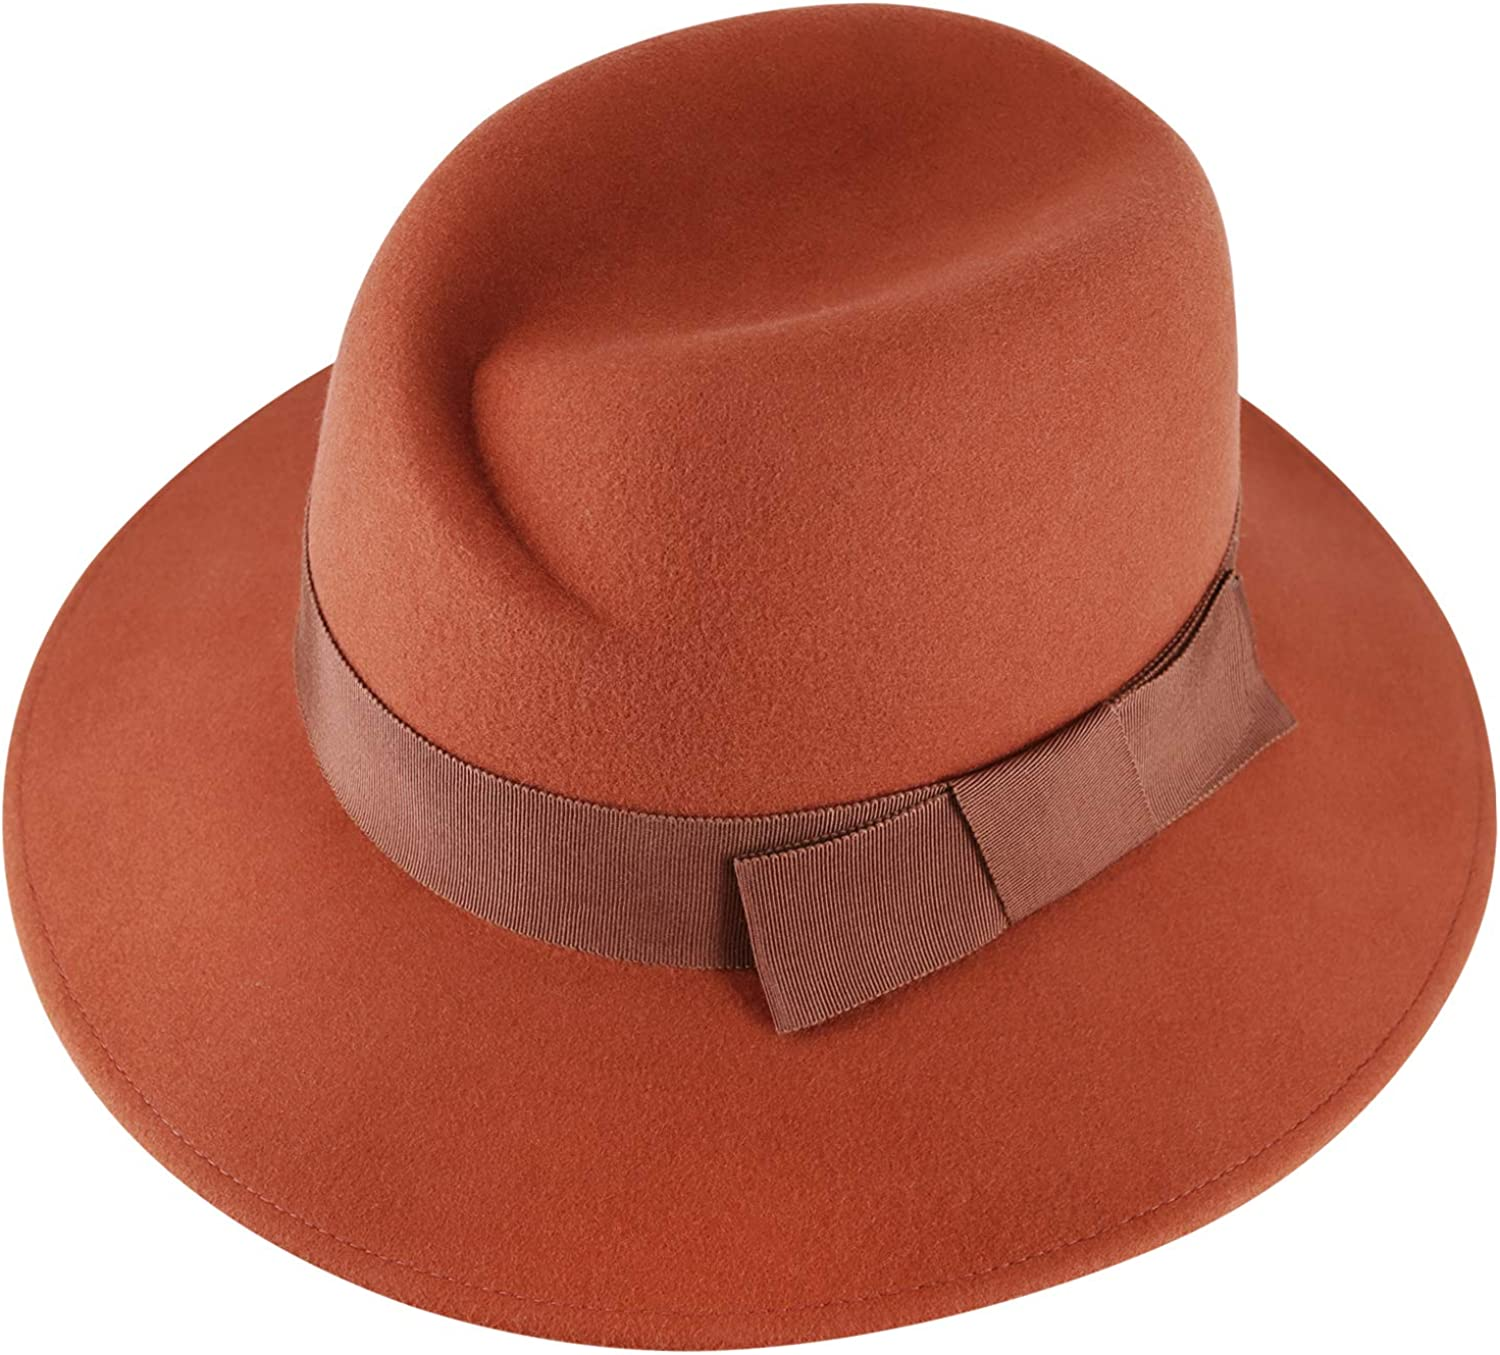 Fedora Hats for Women and Men with Soft Hat Brush 100% Wool Wide Brim Felt Hat Sun Hats for Fall Winter